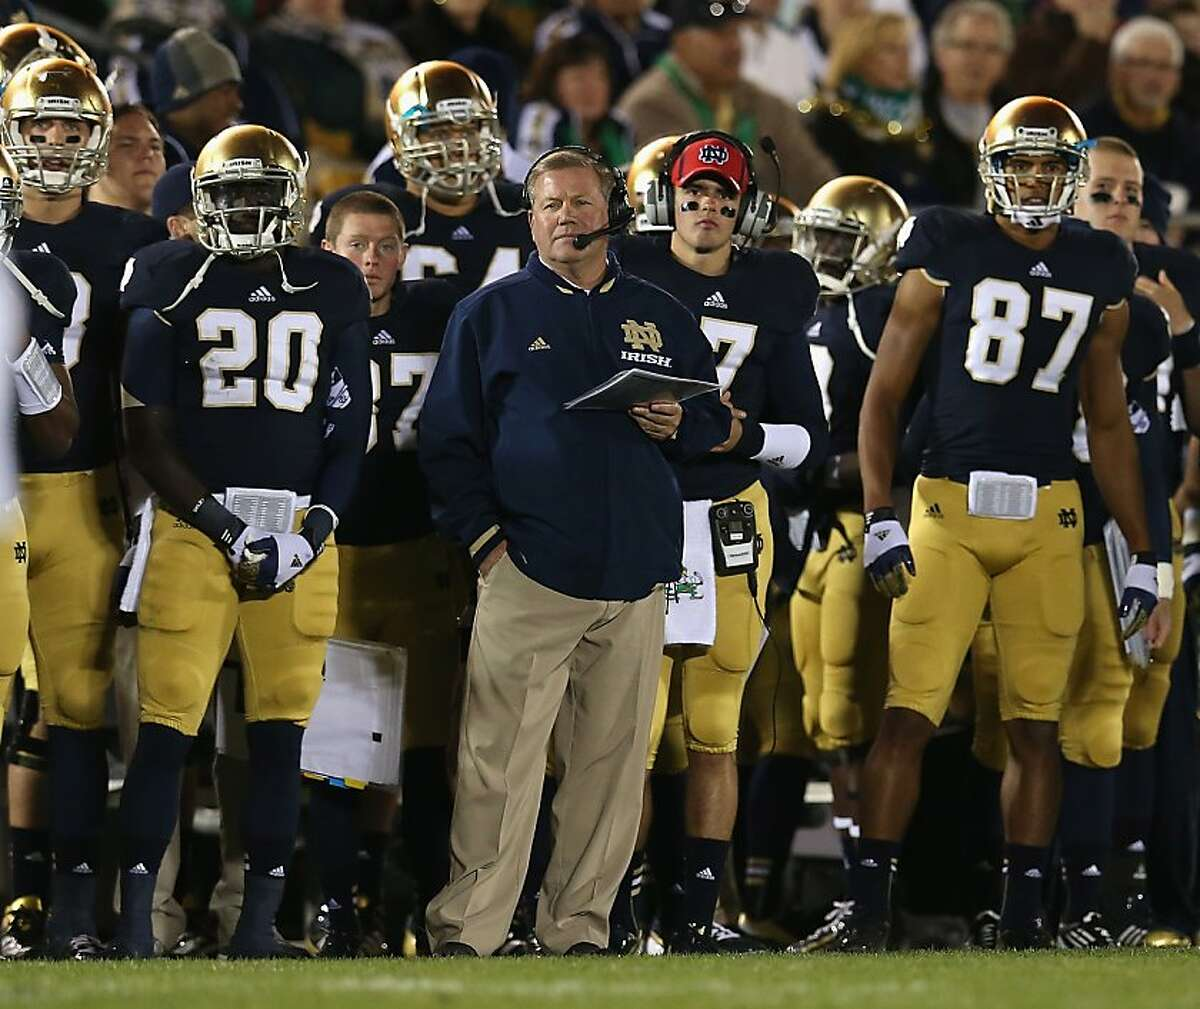 SOUTH BEND, IN - SEPTEMBER 22: Head coach Brian Kelly of the Notre Dame Fighting Irish watches along with his team as the Irish take on the Michigan Wolverines at Notre Dame Stadium on September 22, 2012 in South Bend, Indiana. (Photo by Jonathan Daniel/Getty Images)